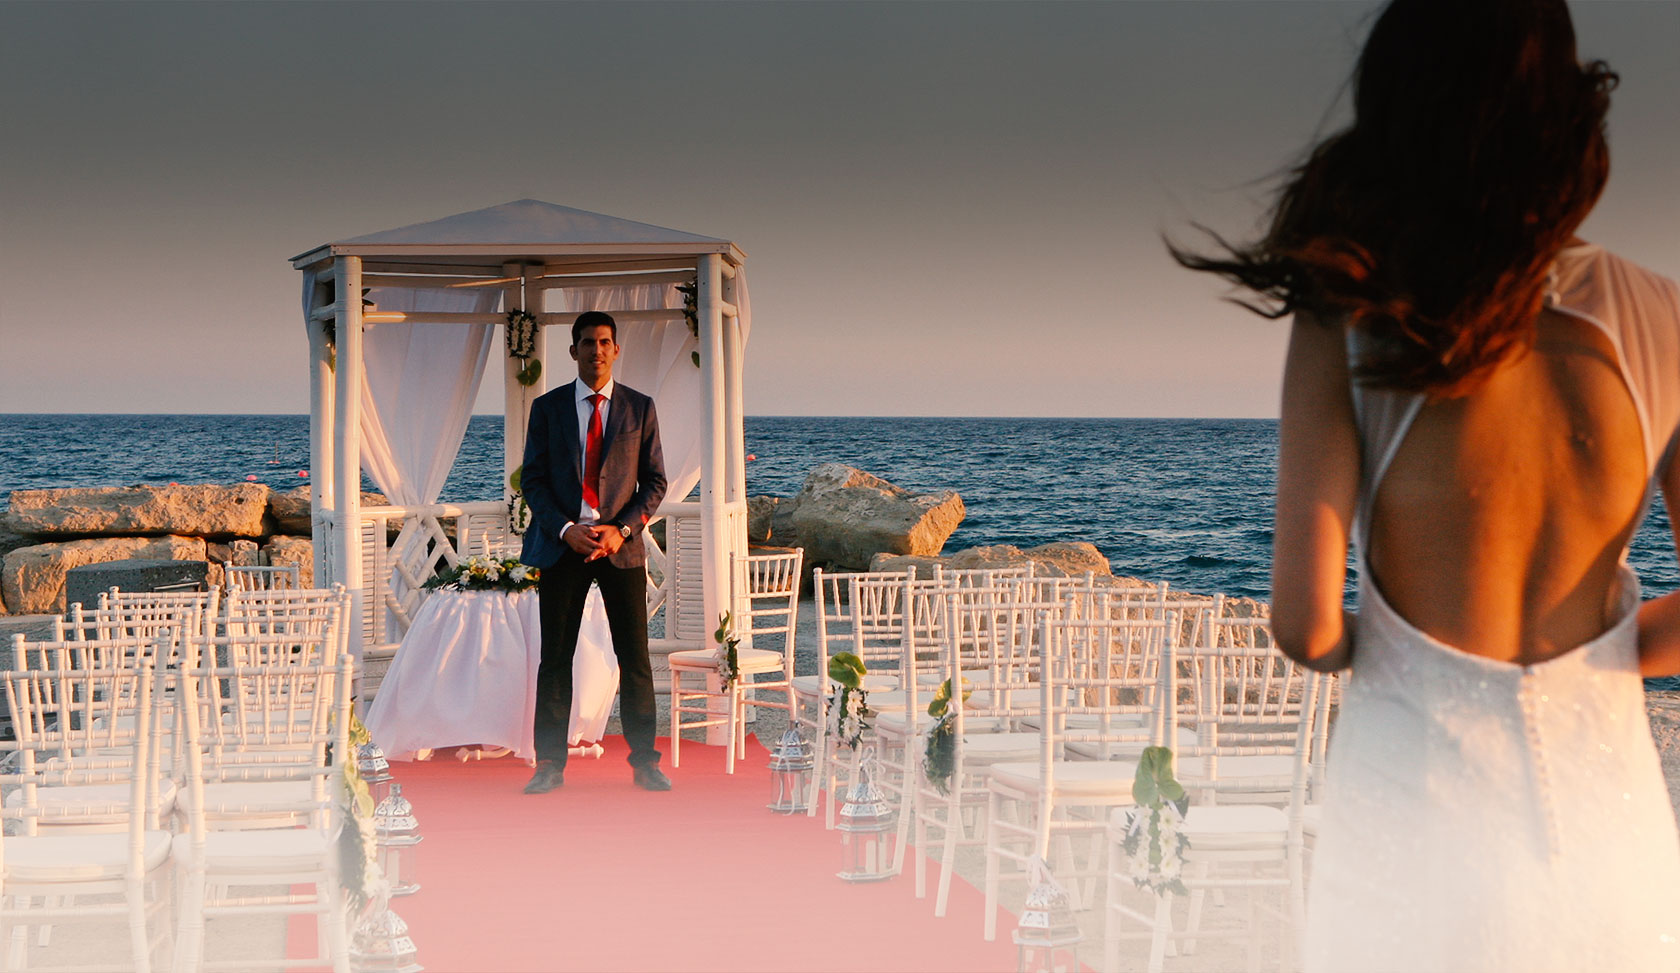 Weddings in Limassol